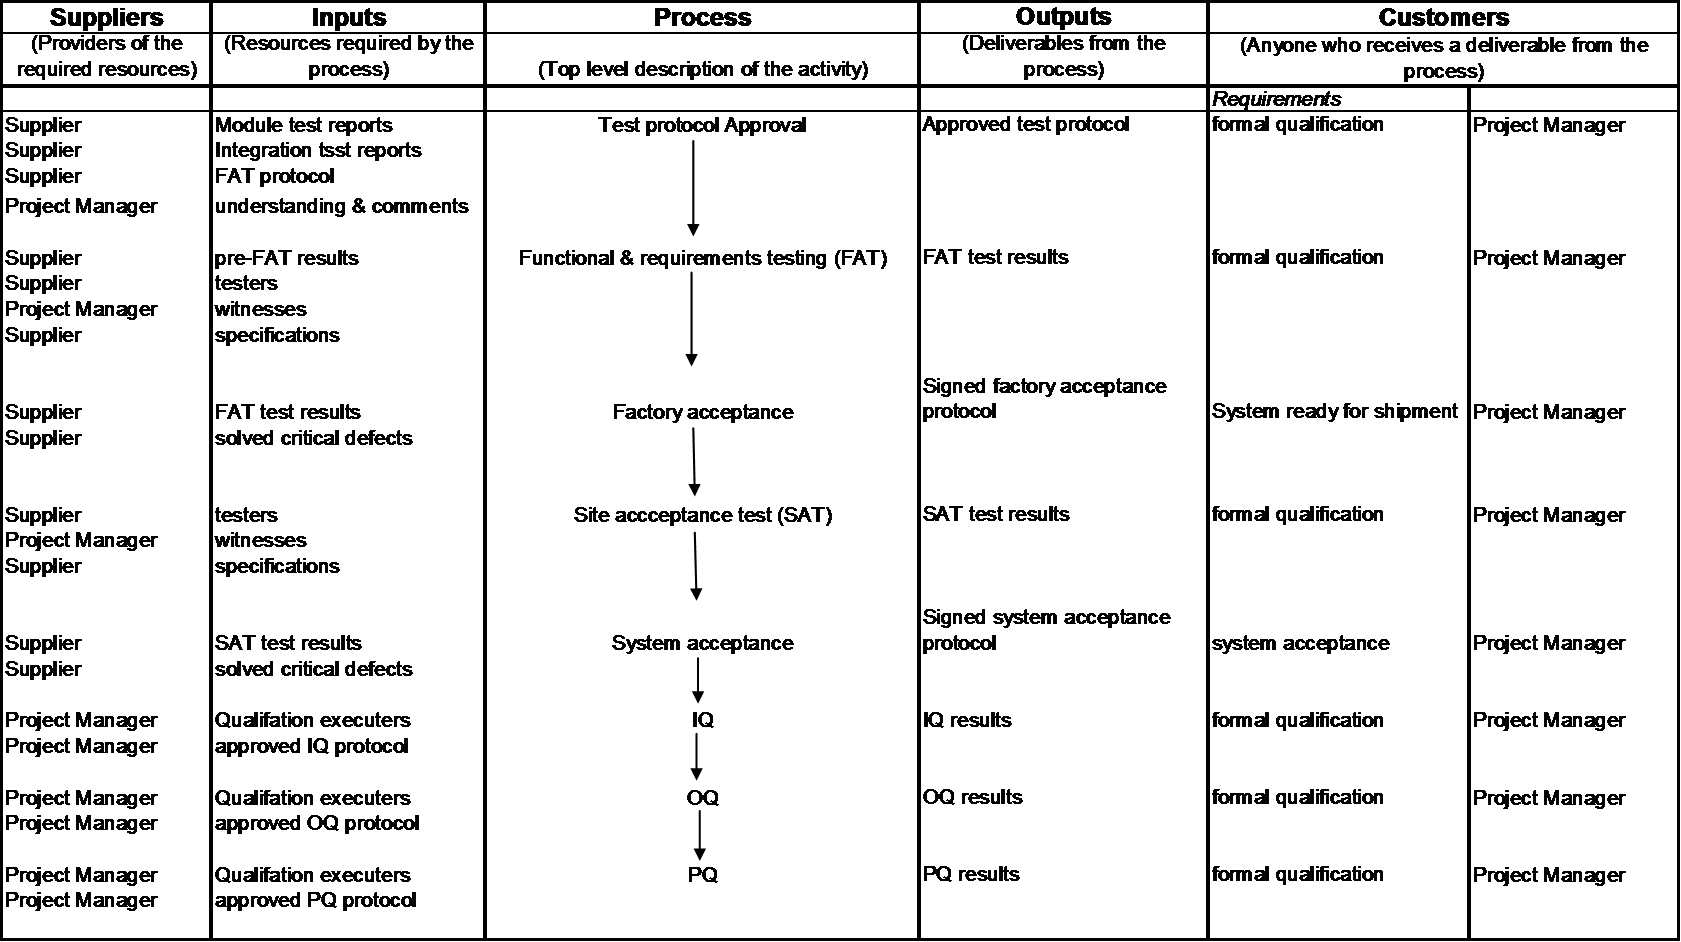 example sipoc diagram template husqvarna trimmer parts validation process